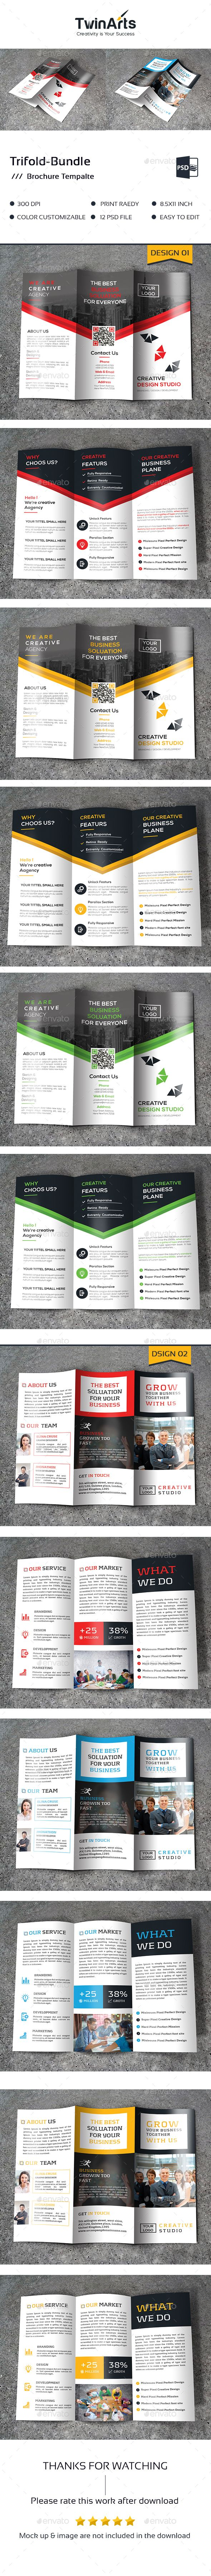 Tri-fold Brochure Bundle Templates PSD. Download here: http://graphicriver.net/item/trifold-bundle_2-in-1/16254670?ref=ksioks